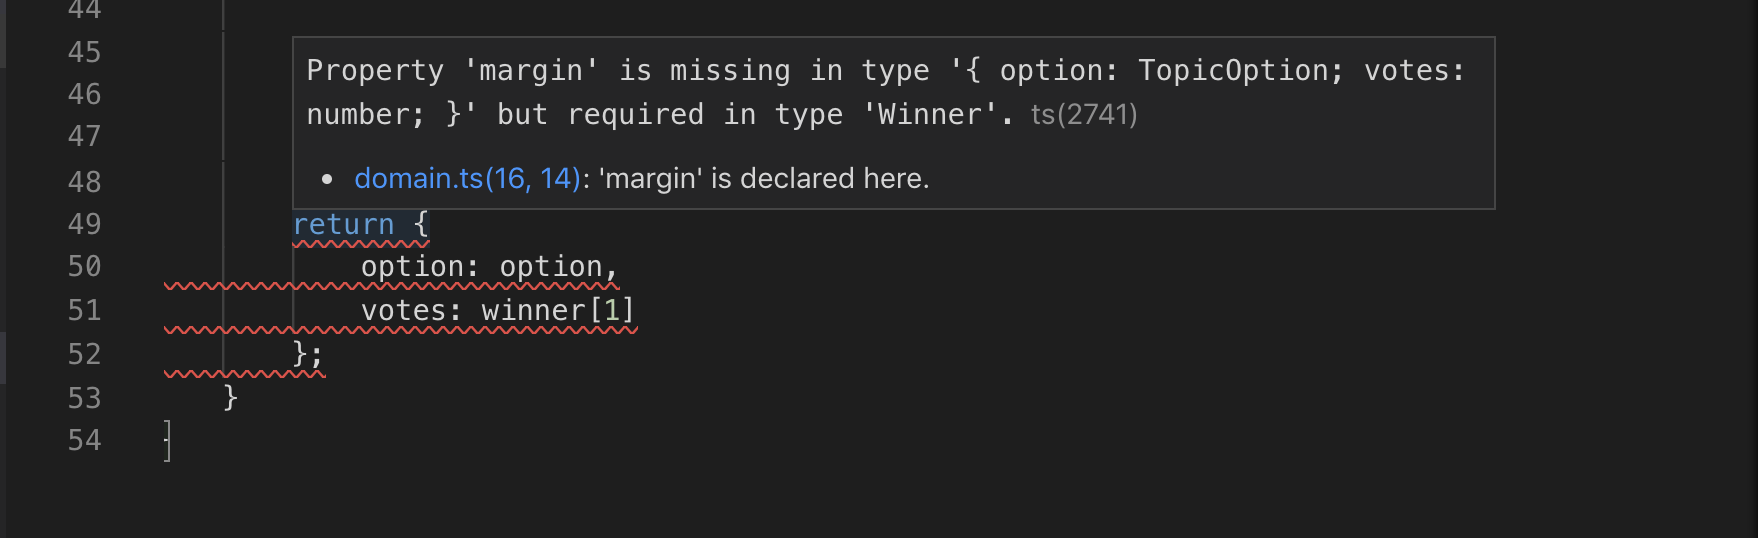 Visual Studio Code: Property 'margin' is missing but required in type 'Winner'